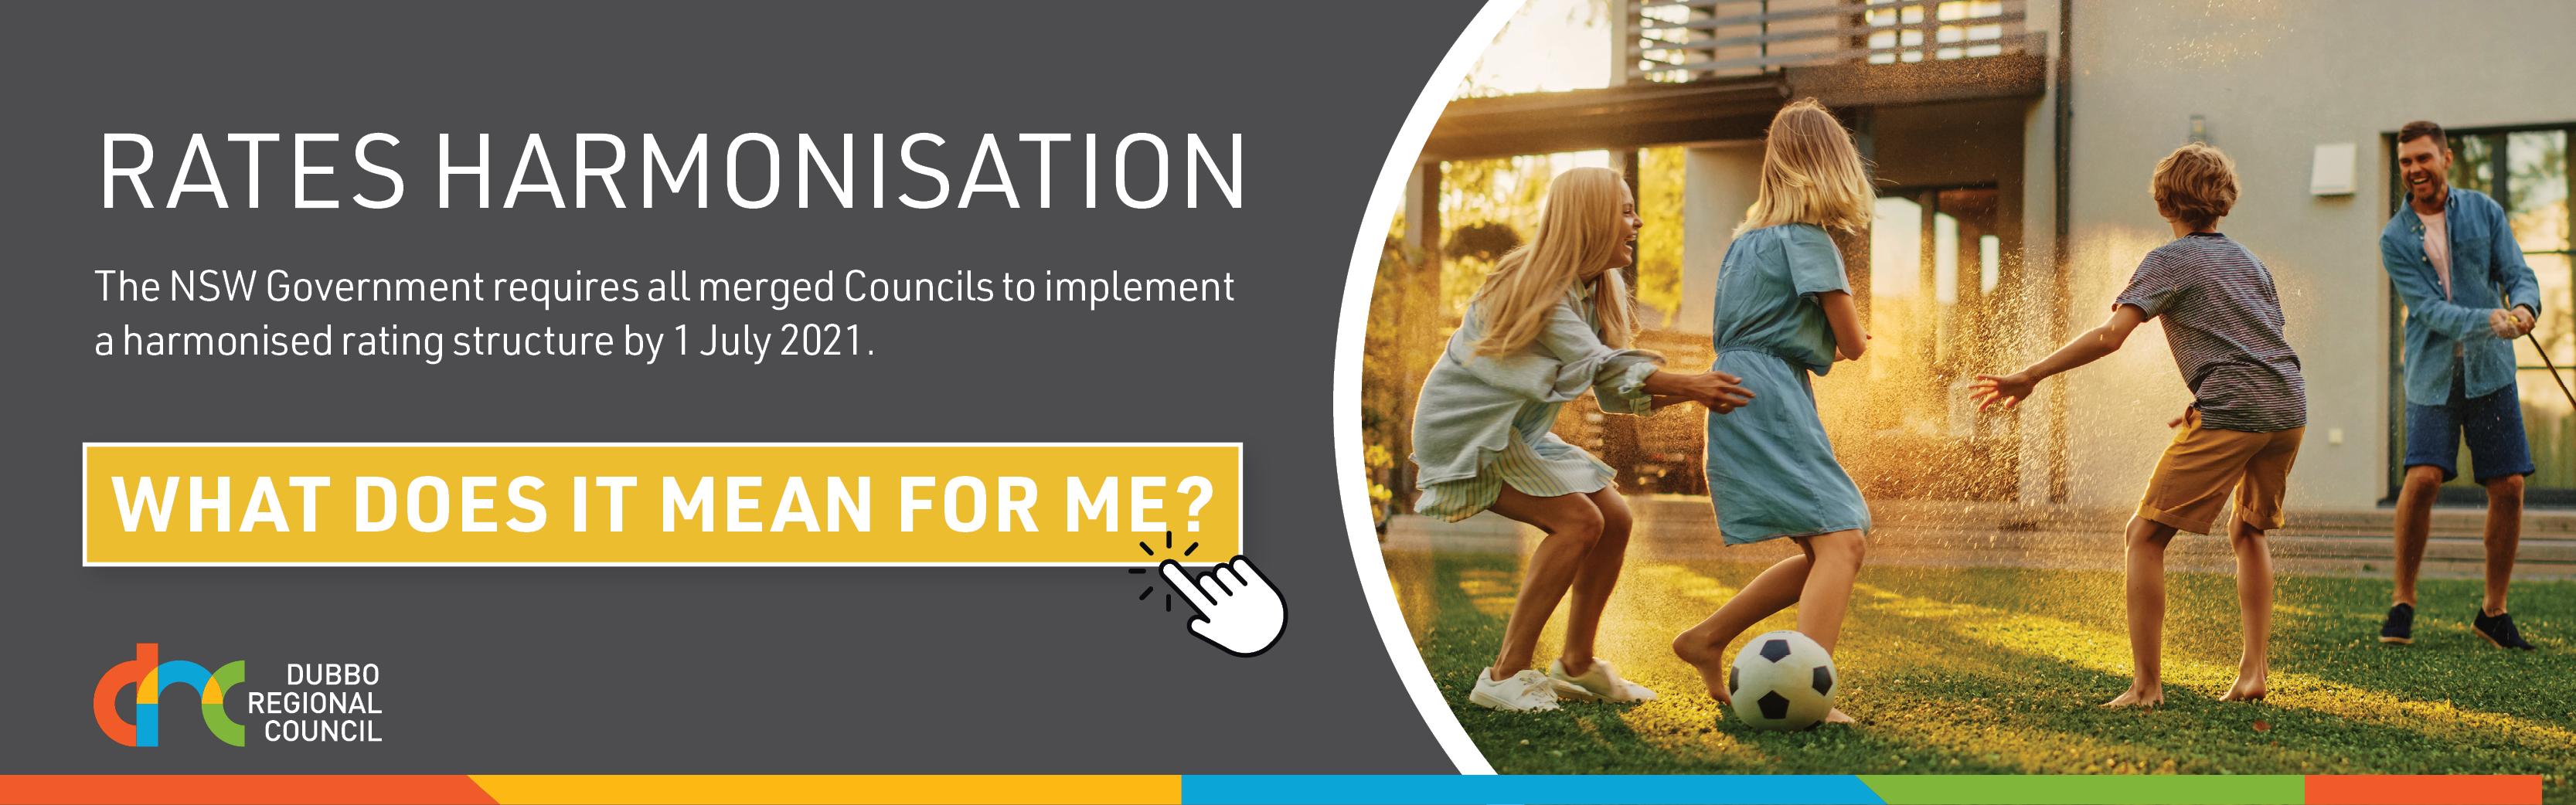 From 1 July, all merged councils in NSW are required to implement at harmonised rate structure. It means that some people may pay less in rates, while others will pay slightly more - but no more than the rate peg set by IPART. Find out what rating category you're in, so you can use our online calculator, which will be up-and-running by May.